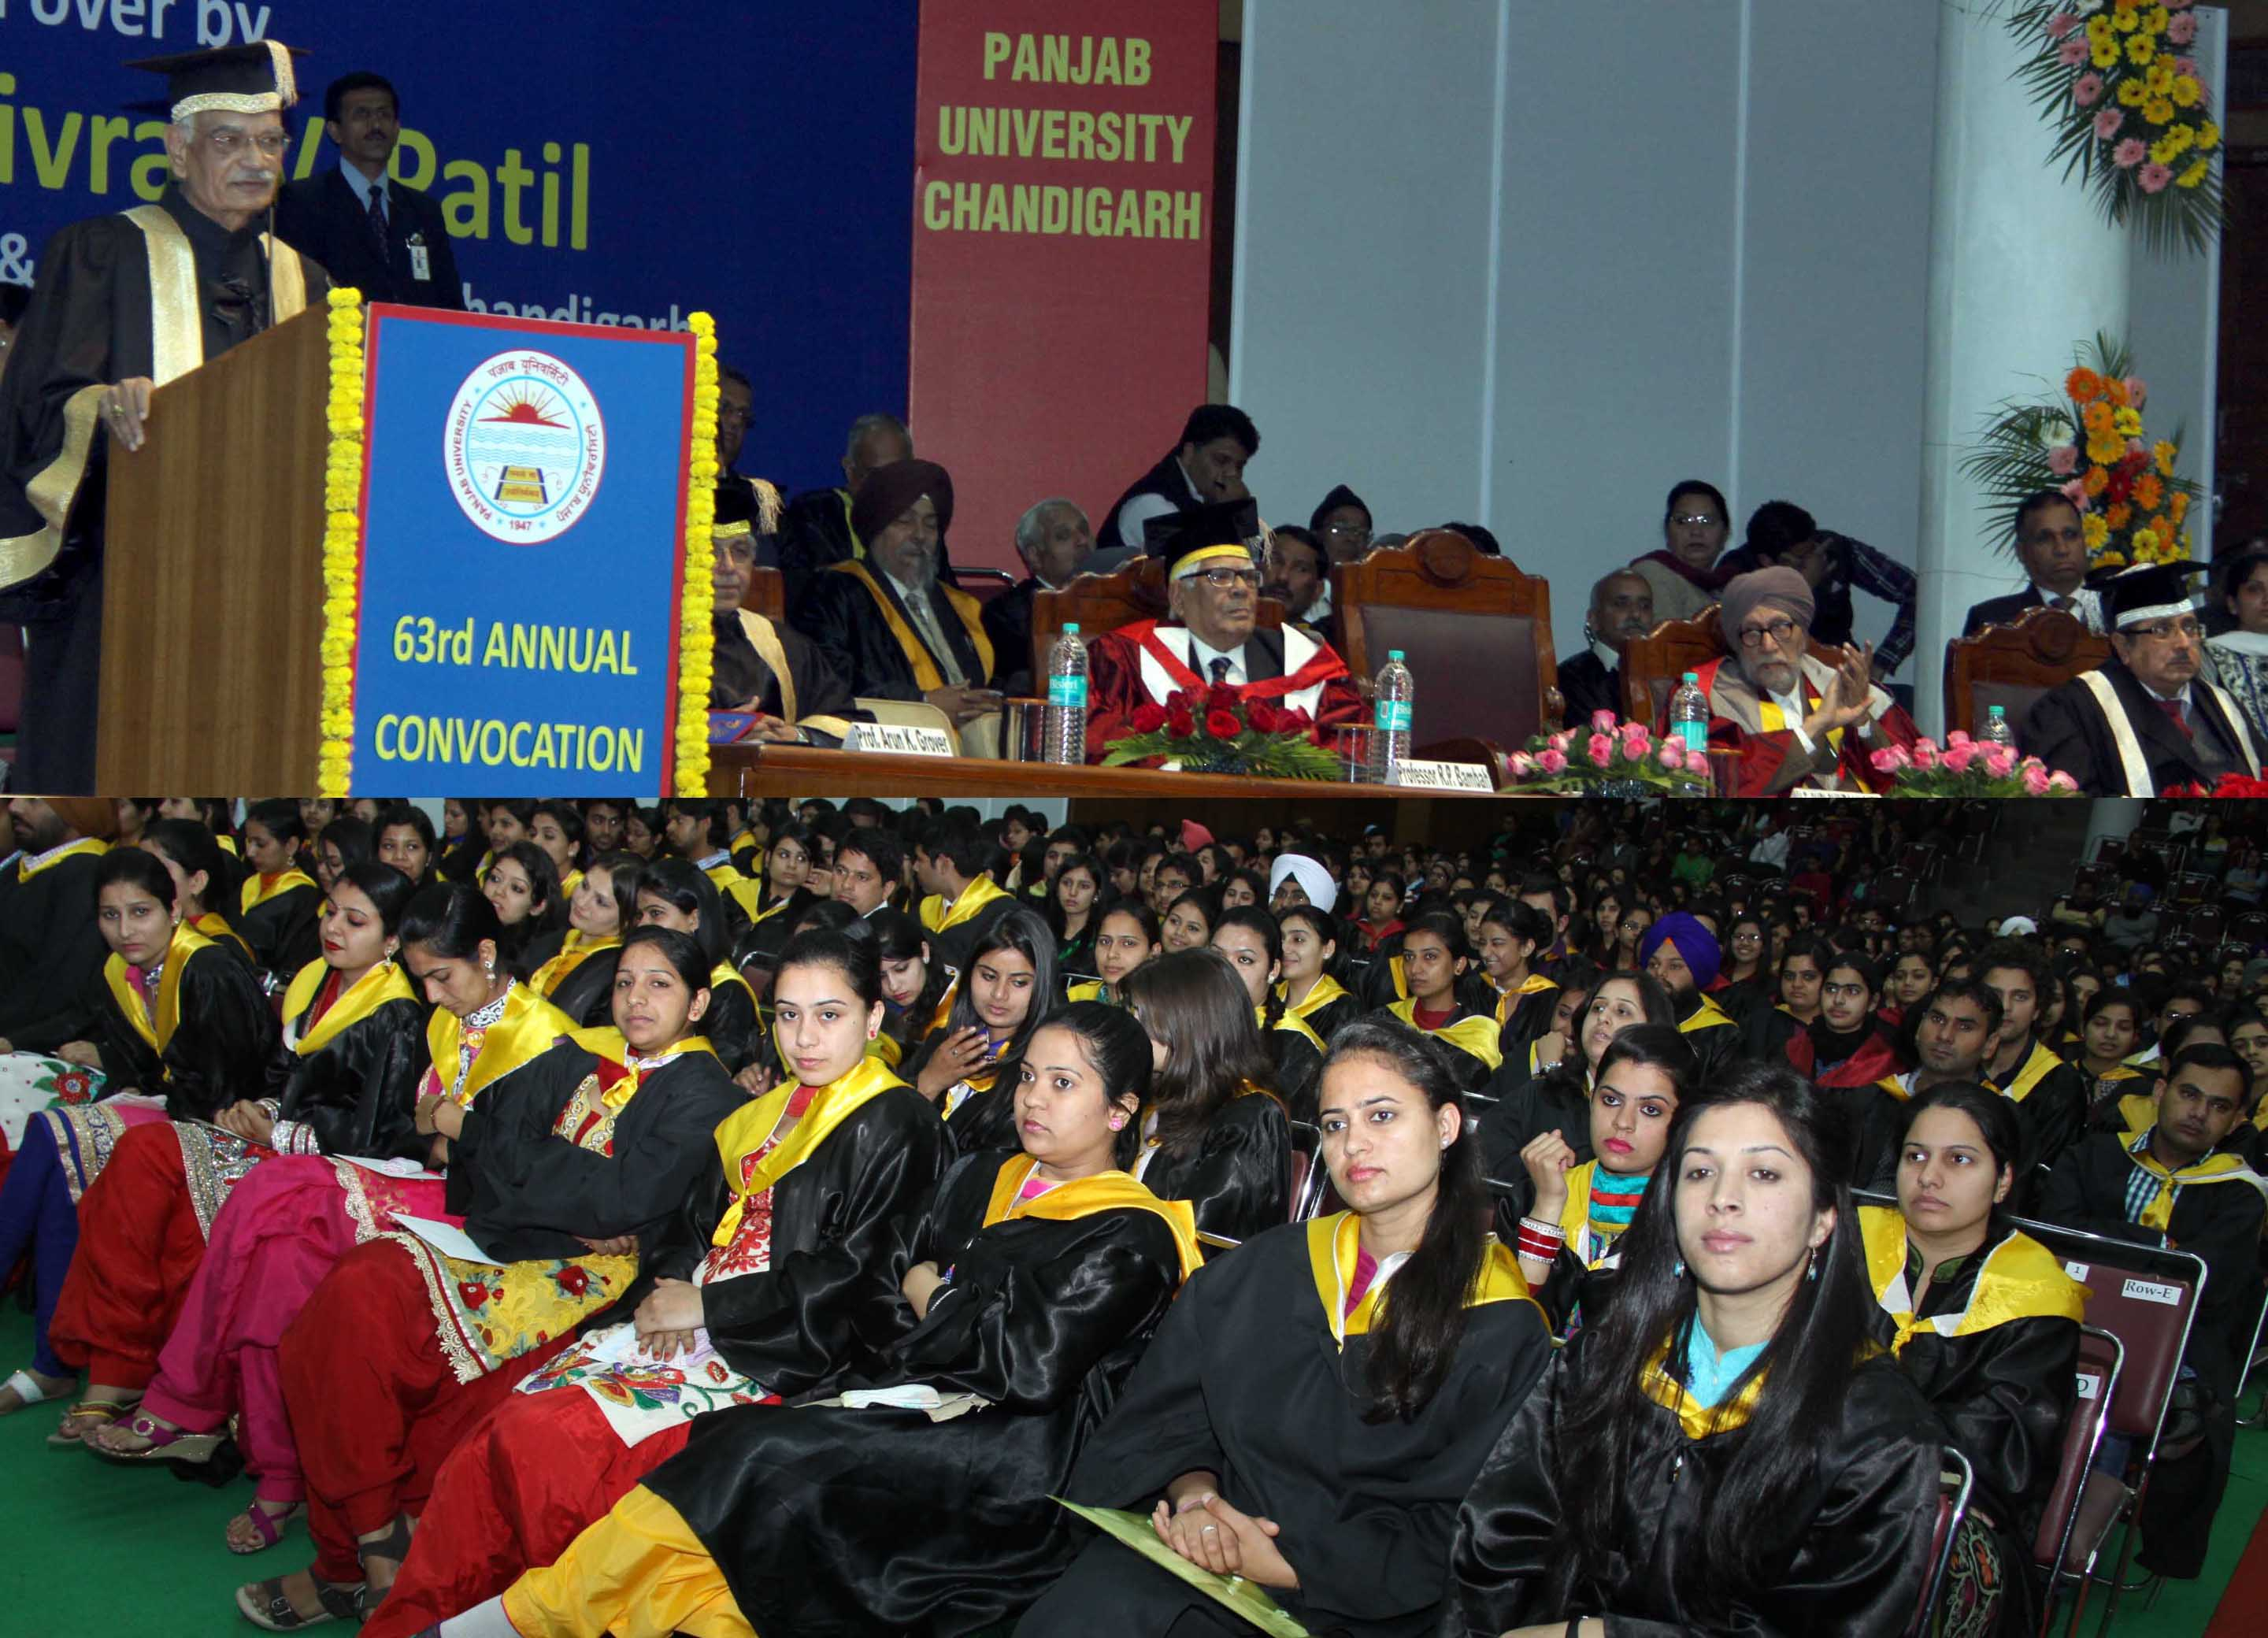 The Punjab Governor and Administrator, Union Territory, Chandigarh, Mr. Shivraj V. Patil presiding over the 63rd Annual Convocation at Panjab University, Chandigarh on Sunday, March 09, 2014.